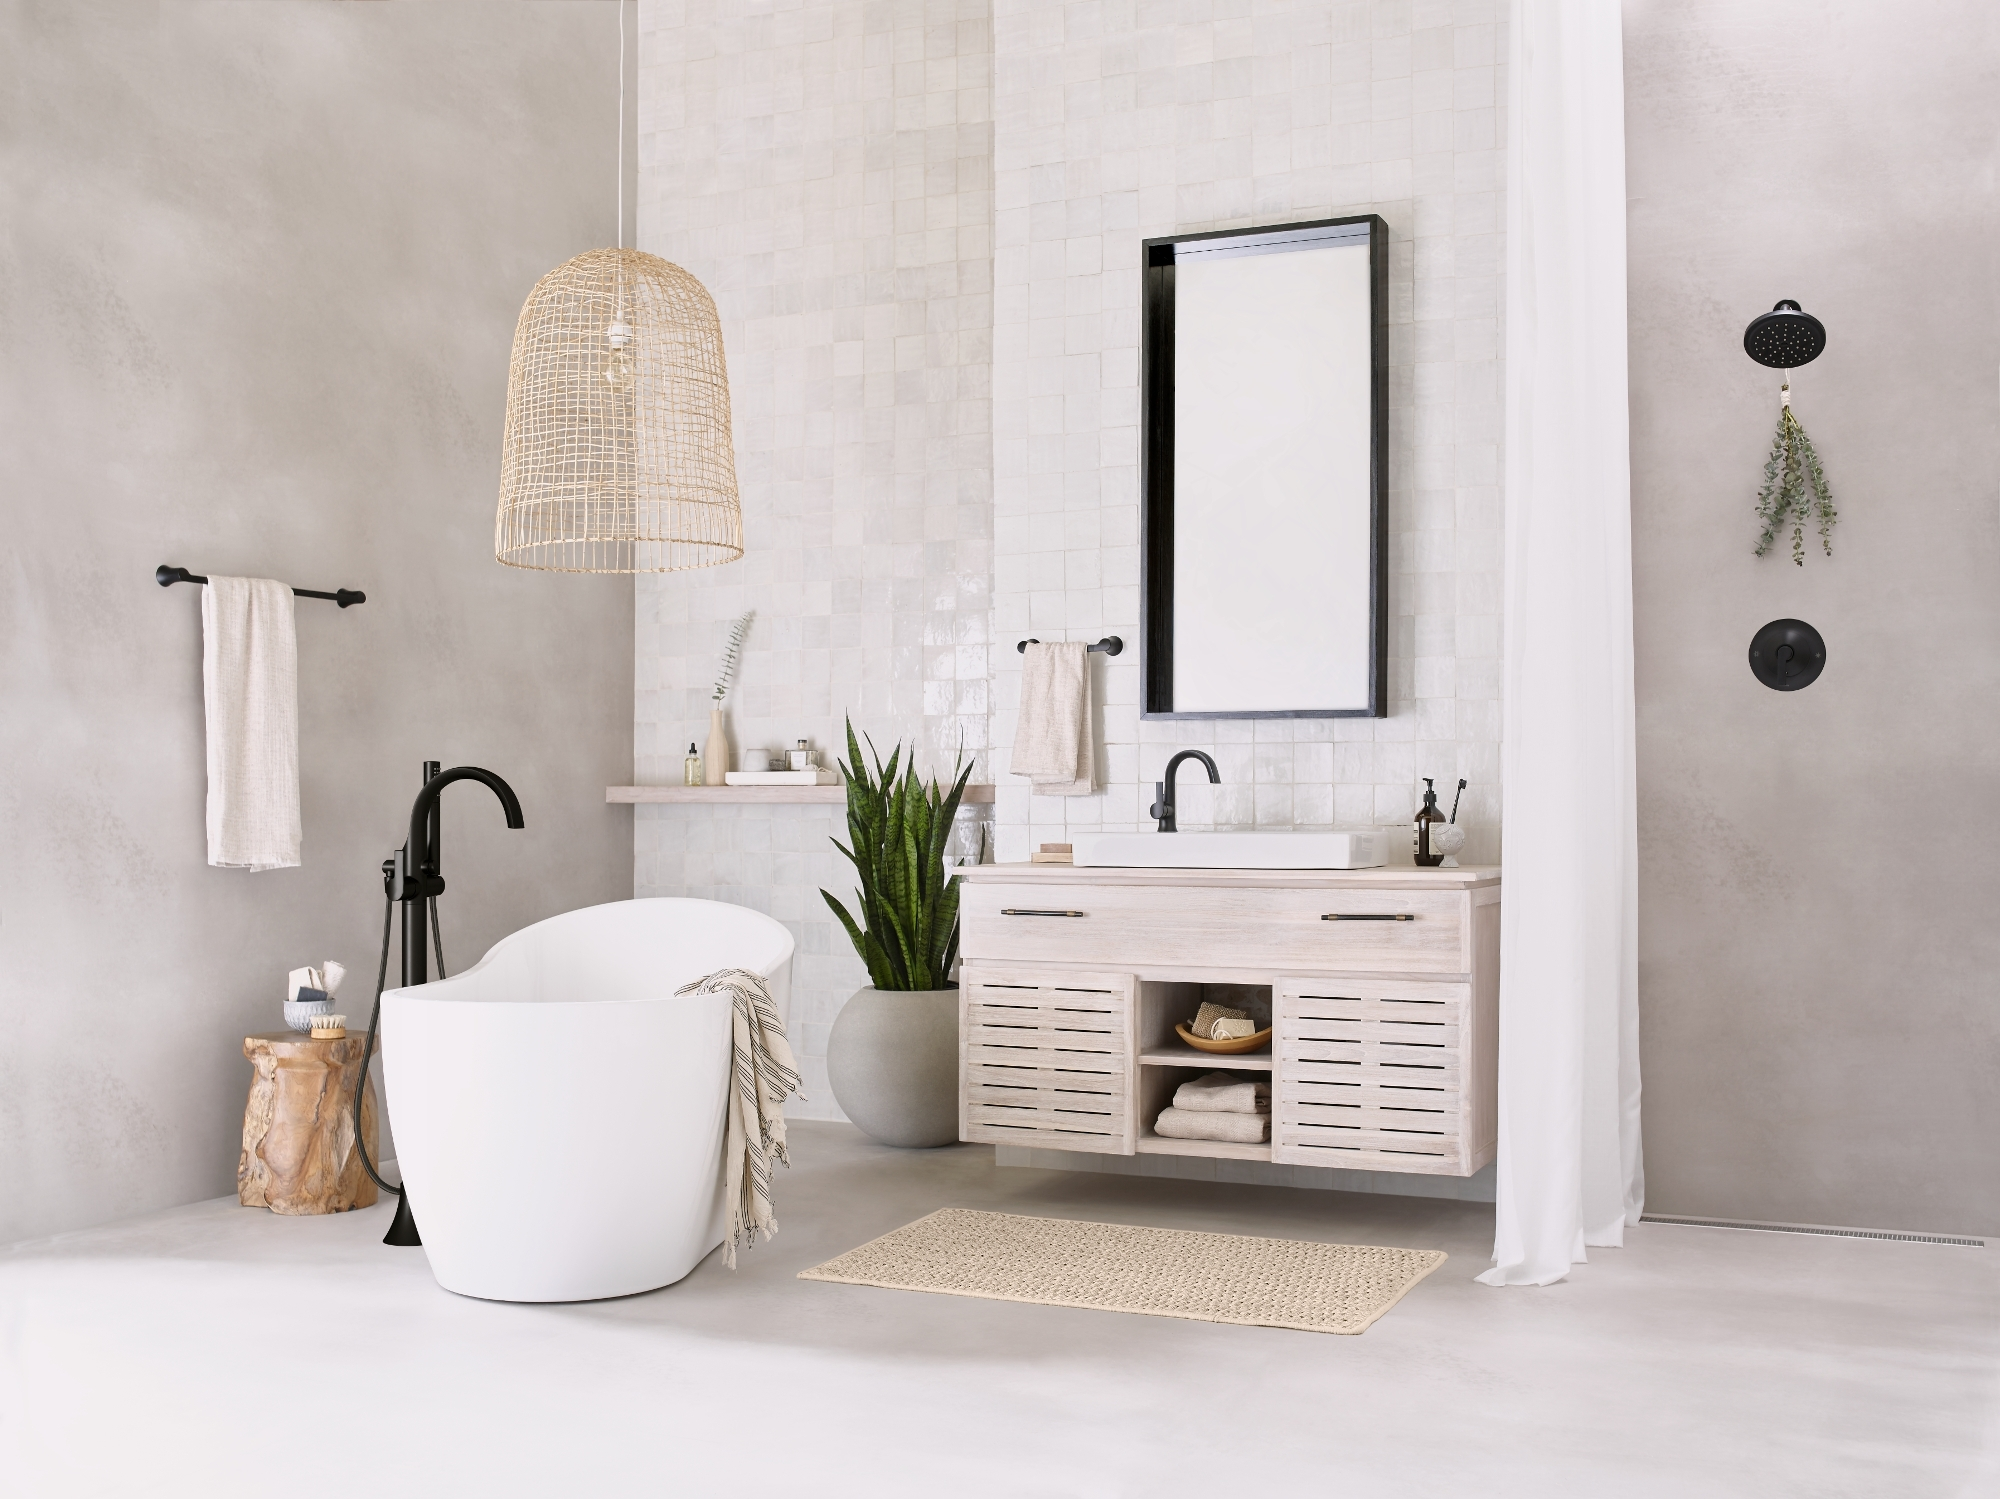 New Doux™ Suite From Moen Brings Elevated Elegance To The 10+ Moen Bathroom Design Ideas